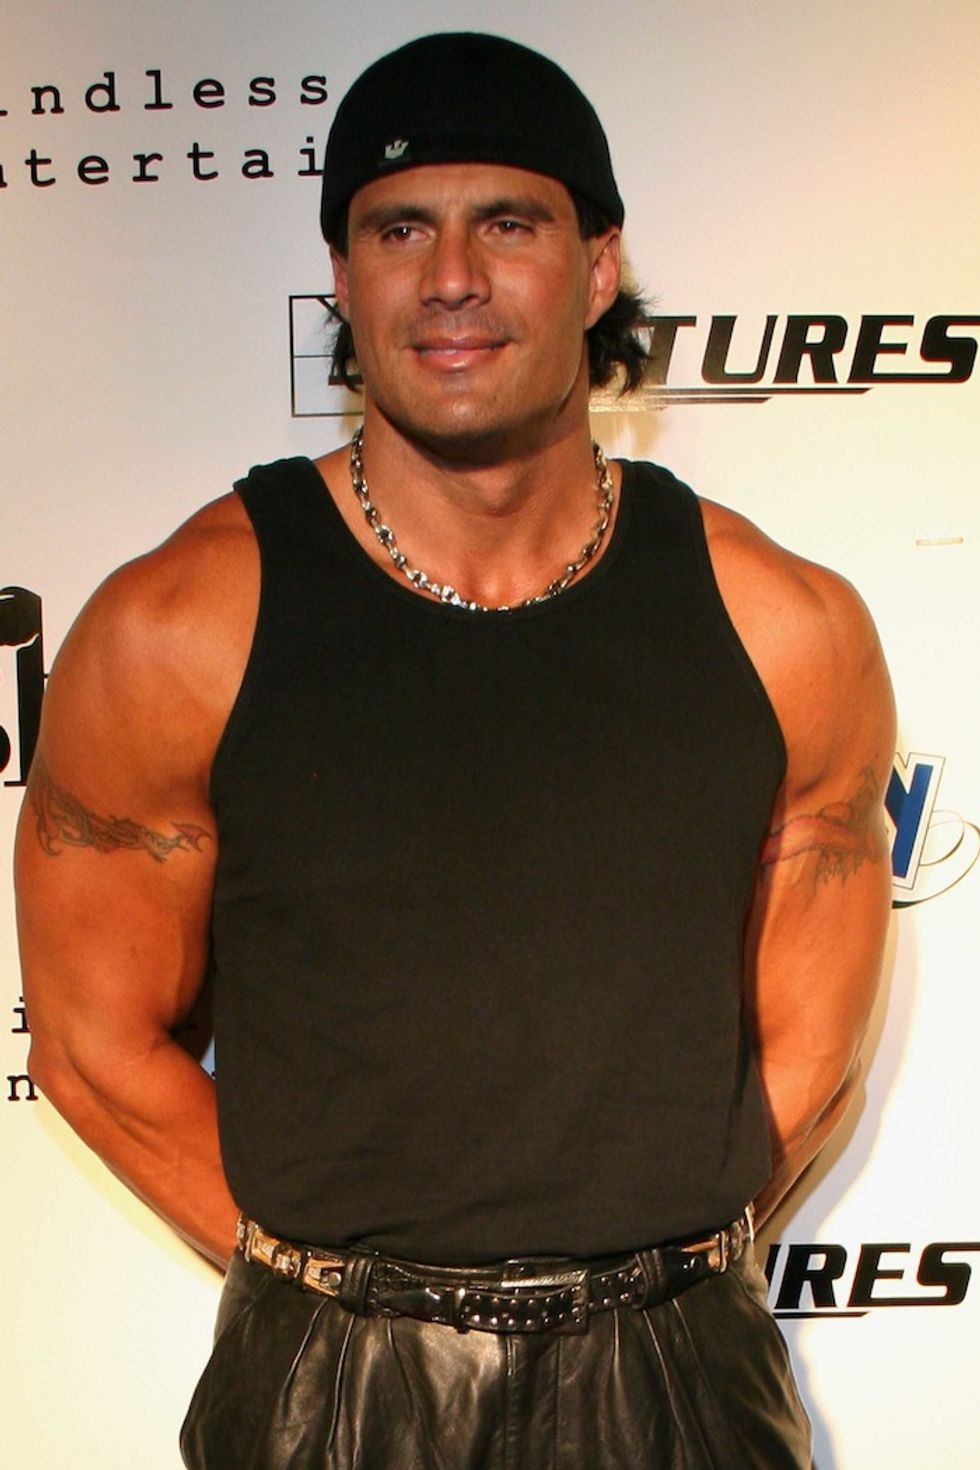 Jose Canseco Thinks Dressing As a Woman Means He Understands Being Trans